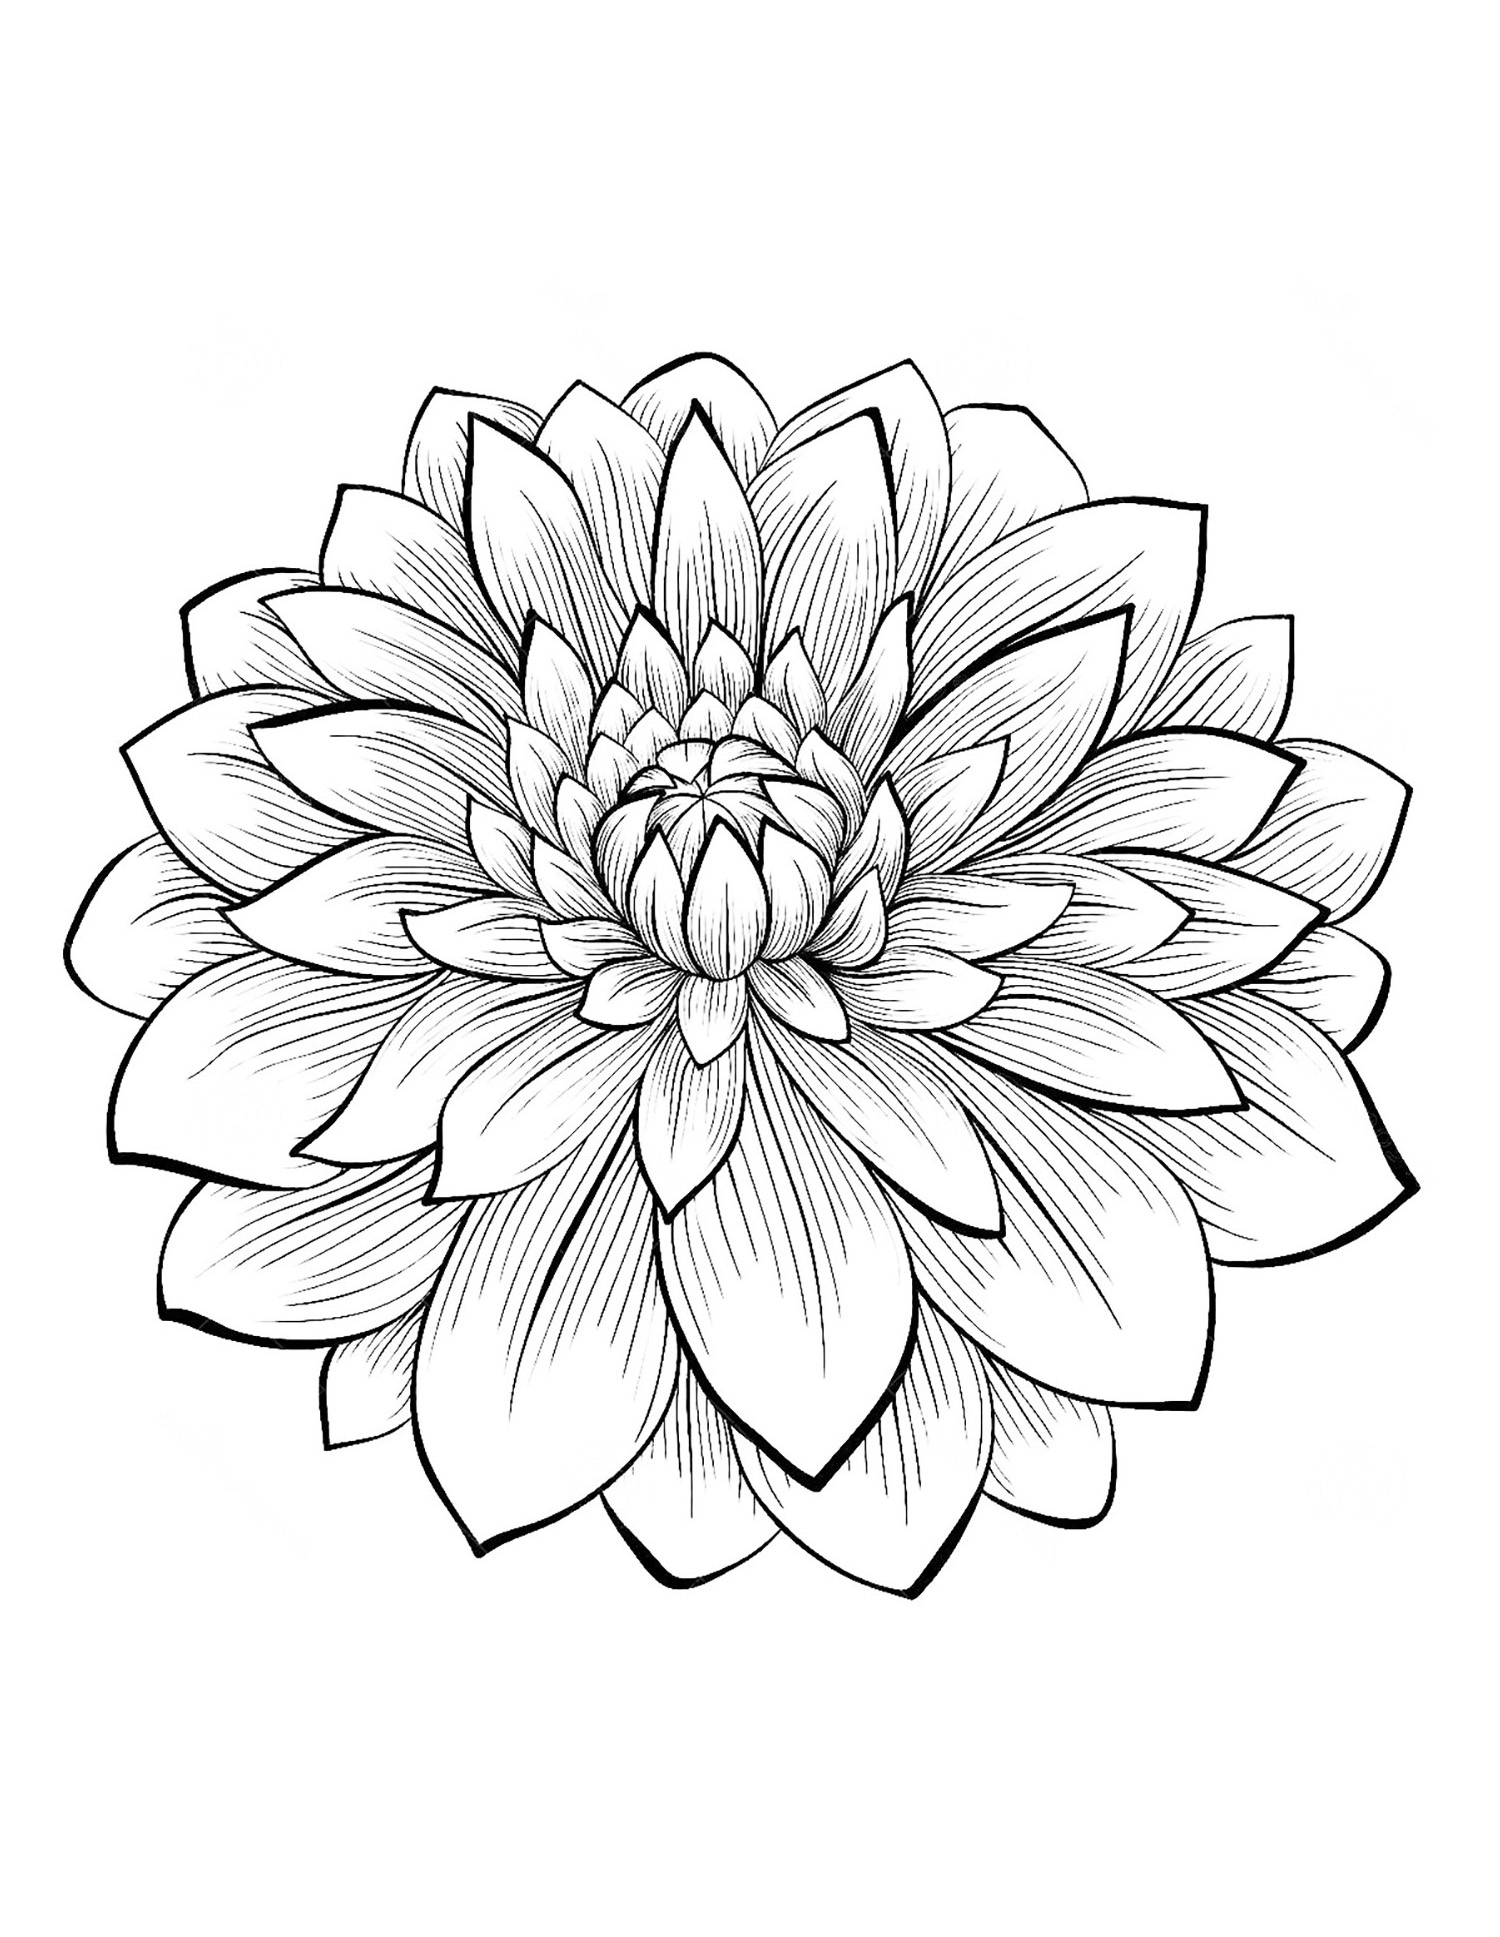 1500x1937 Dahlia Flower Flowers Coloring Pages For Kids To Print Amp Color